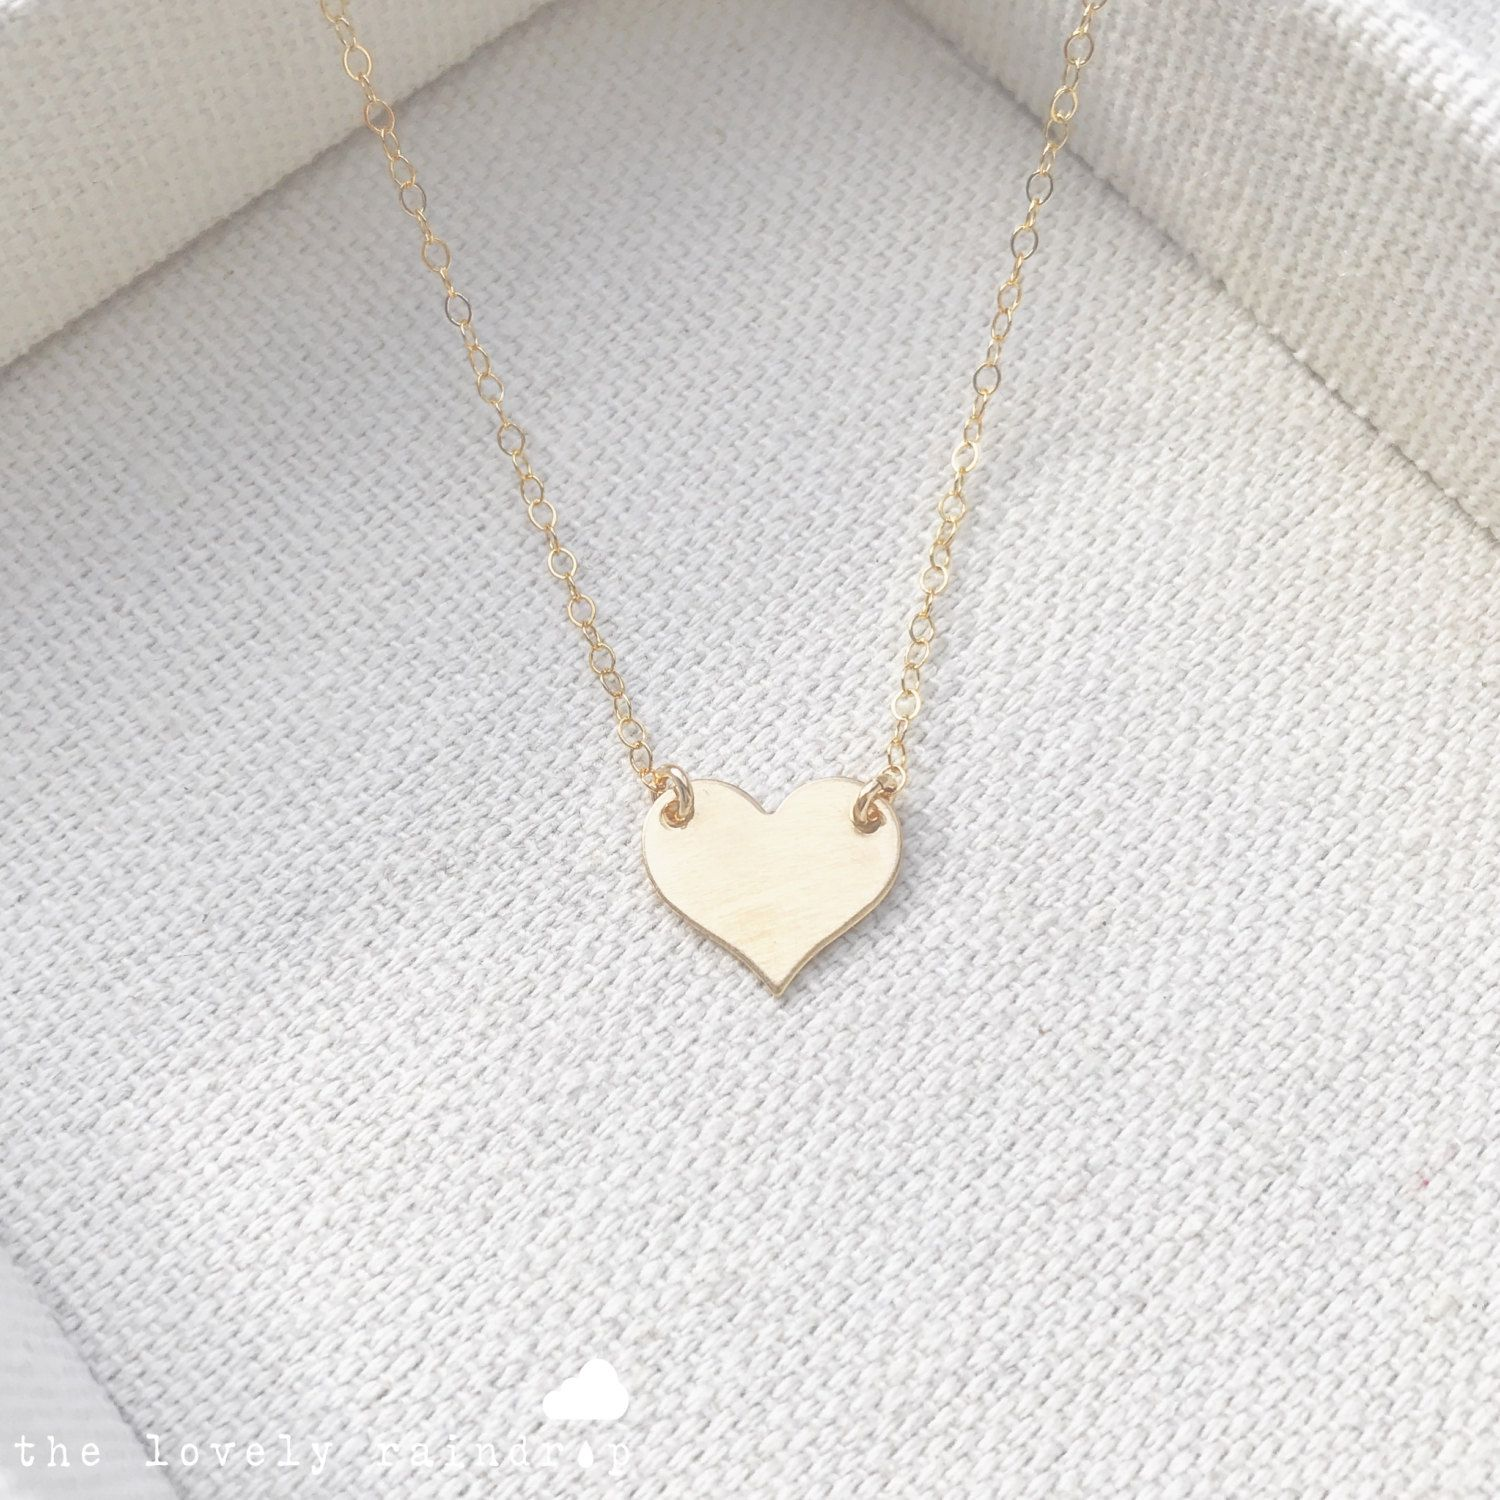 NEW Gold Little Heart Necklace Small Dainty Heart Charm Bridal